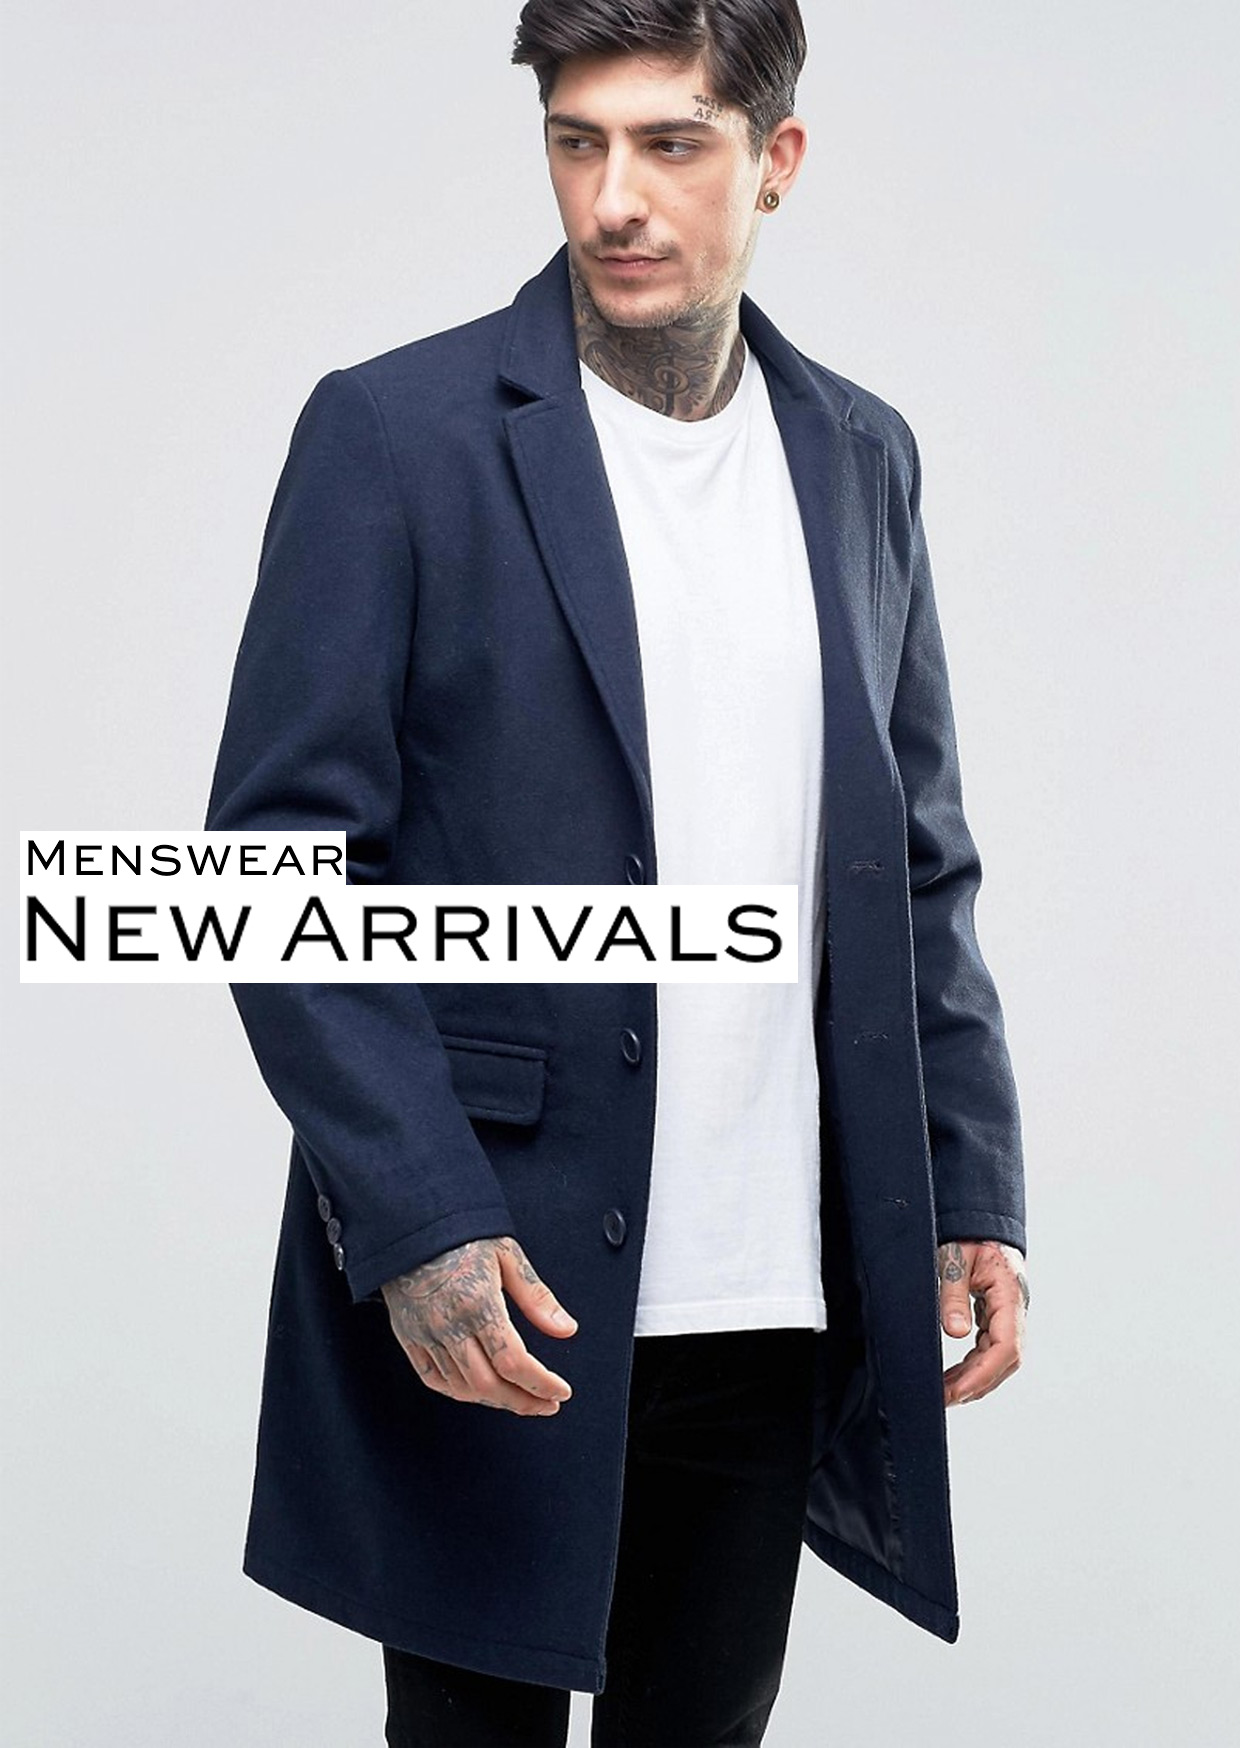 menswearnew-arrivals-smallbanner1sted.jpg